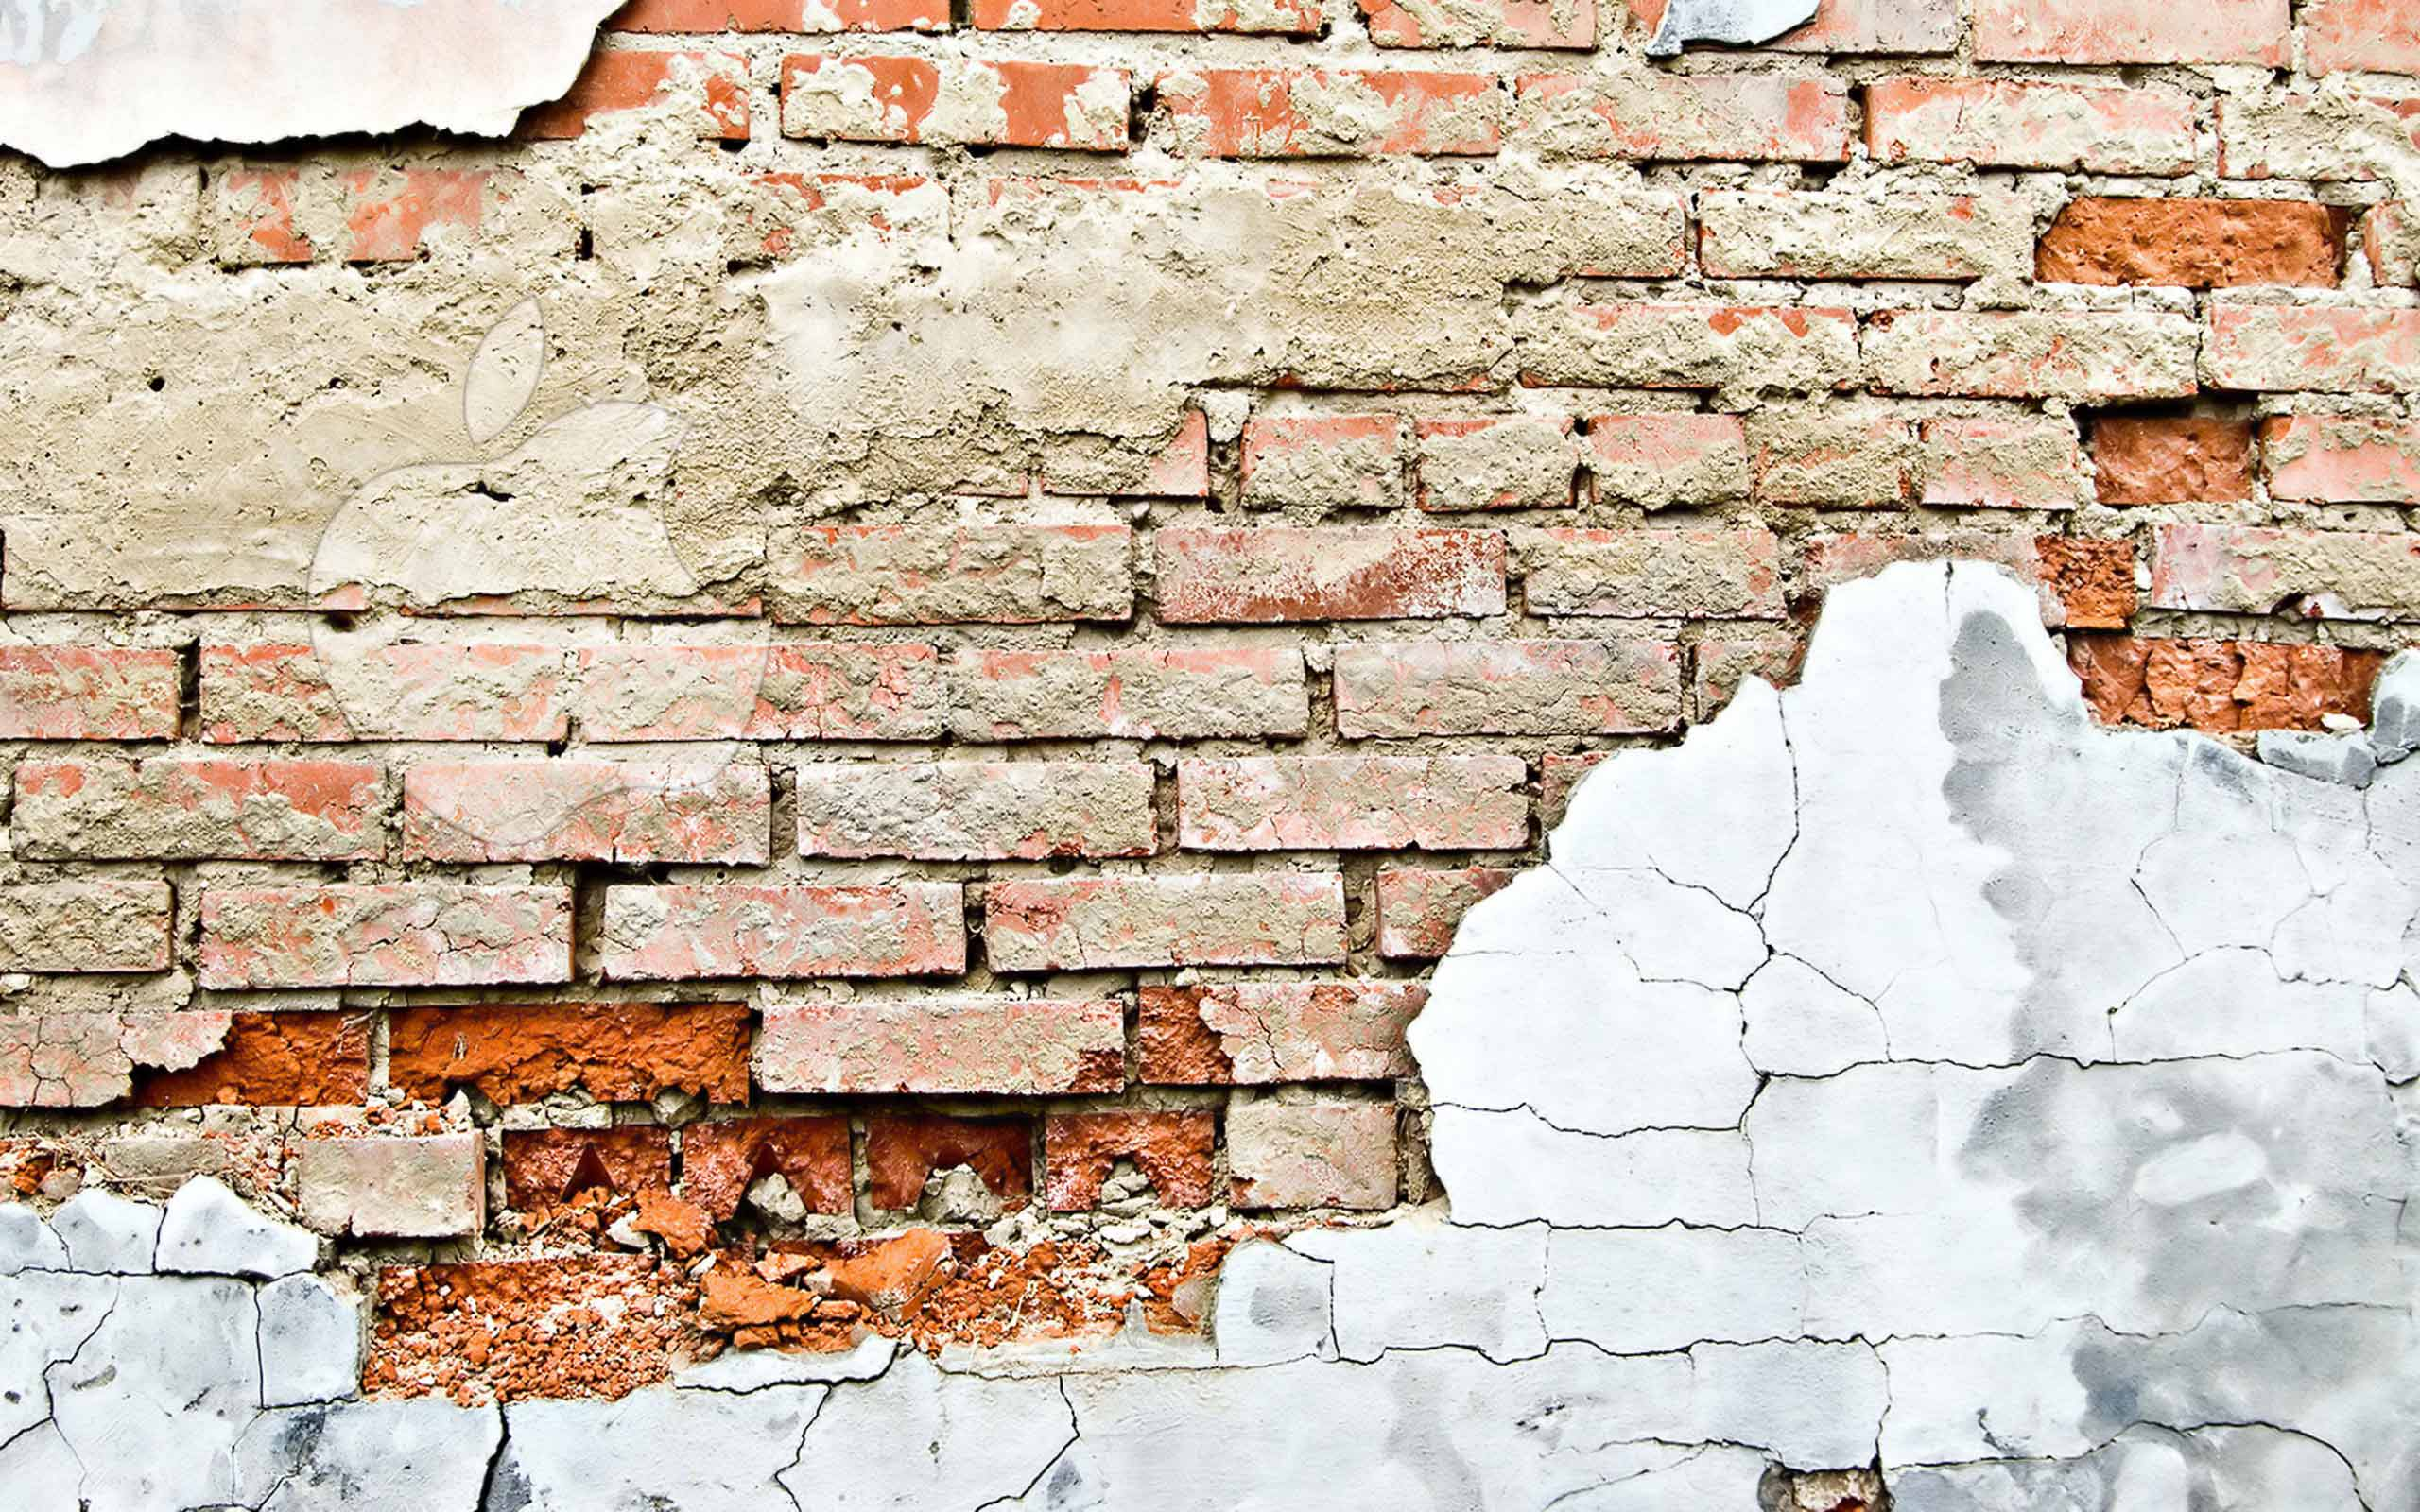 Man Cave With Brick Wall : Wall backgrounds wallpaper cave